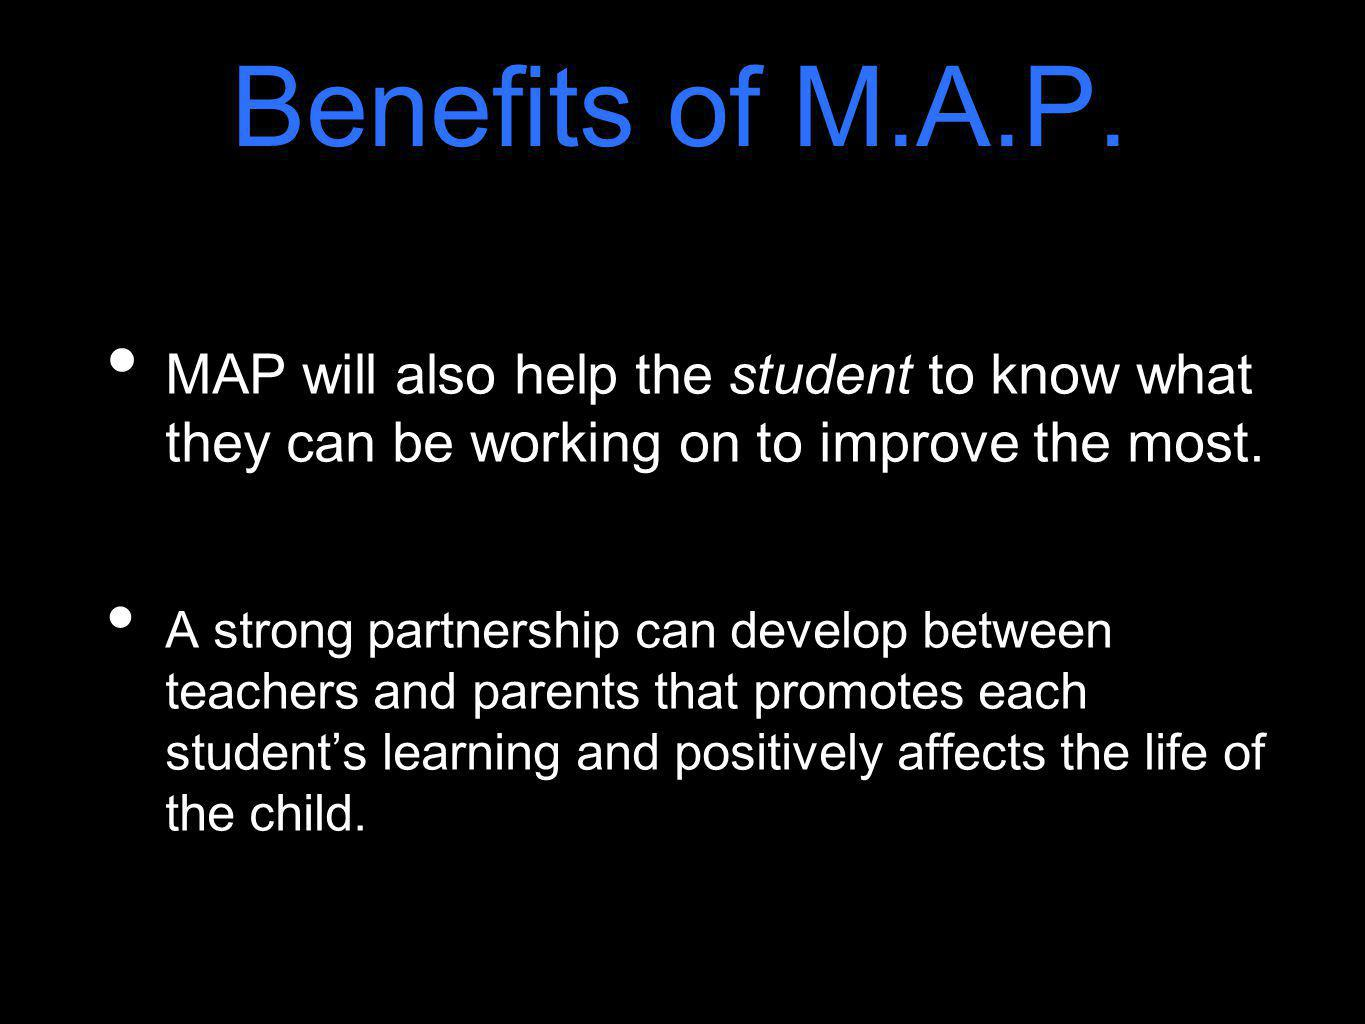 Benefits of M.A.P. MAP will also help the student to know what they can be working on to improve the most.